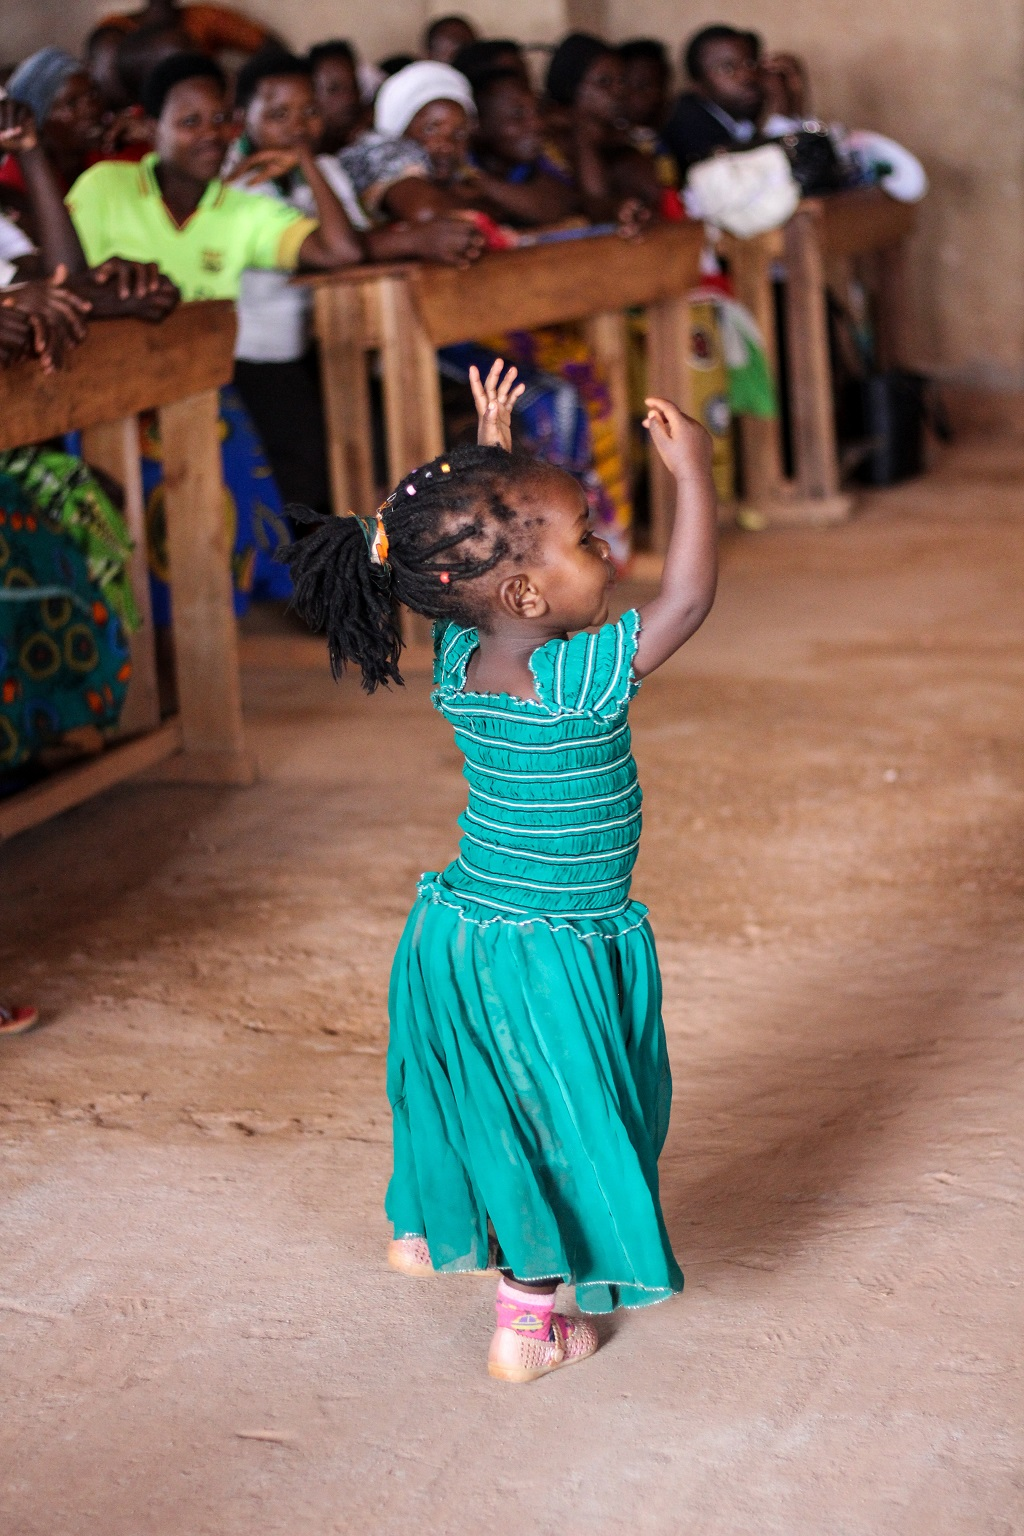 african girl, barely five in age, in green dress dances in church as congregation wathces on